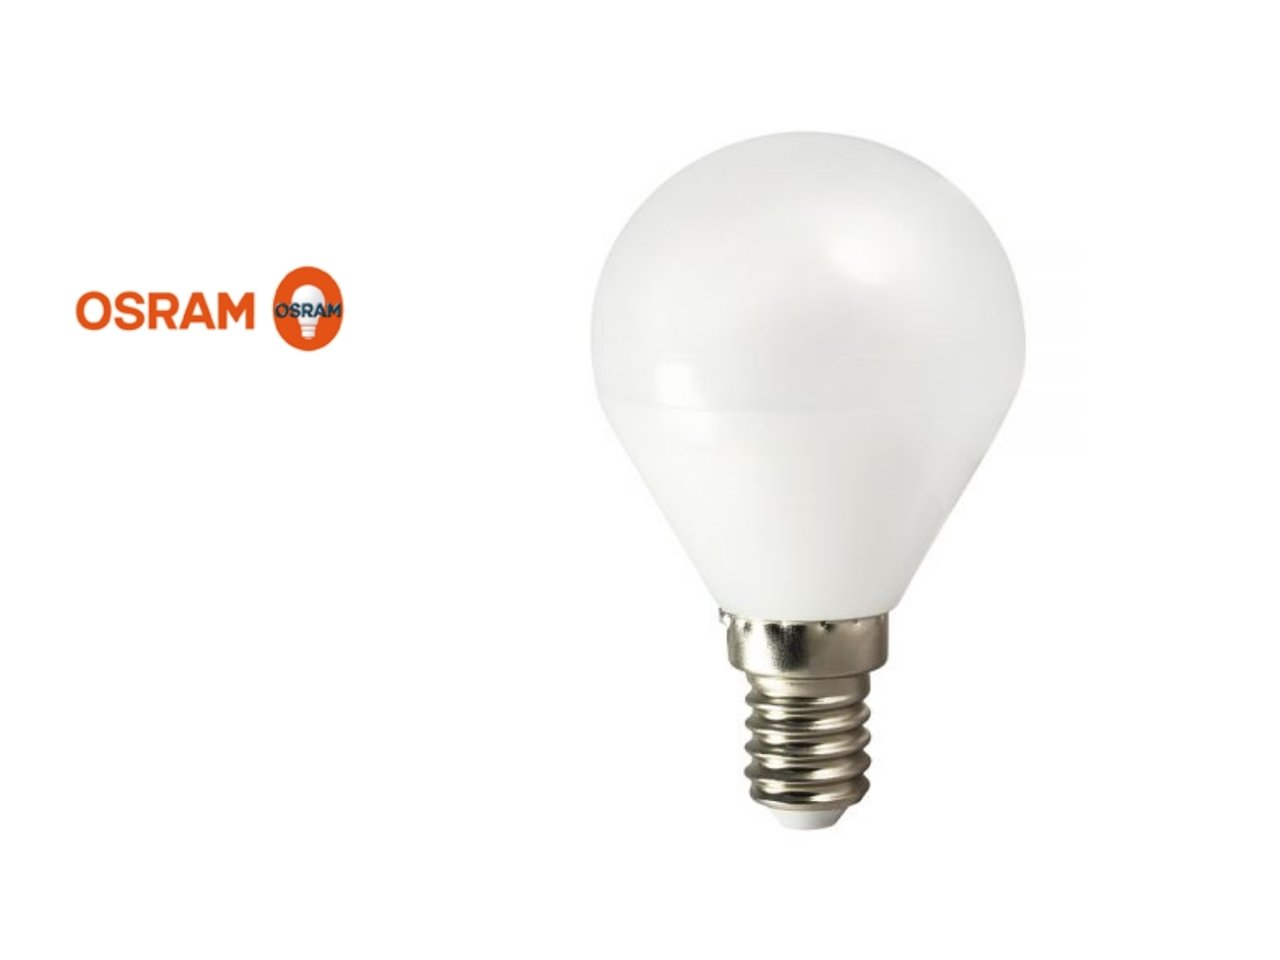 Led Dimmbar E14 Osram Led 4w 25w Warmweiß E14 Nicht Dimmbar Light Blue